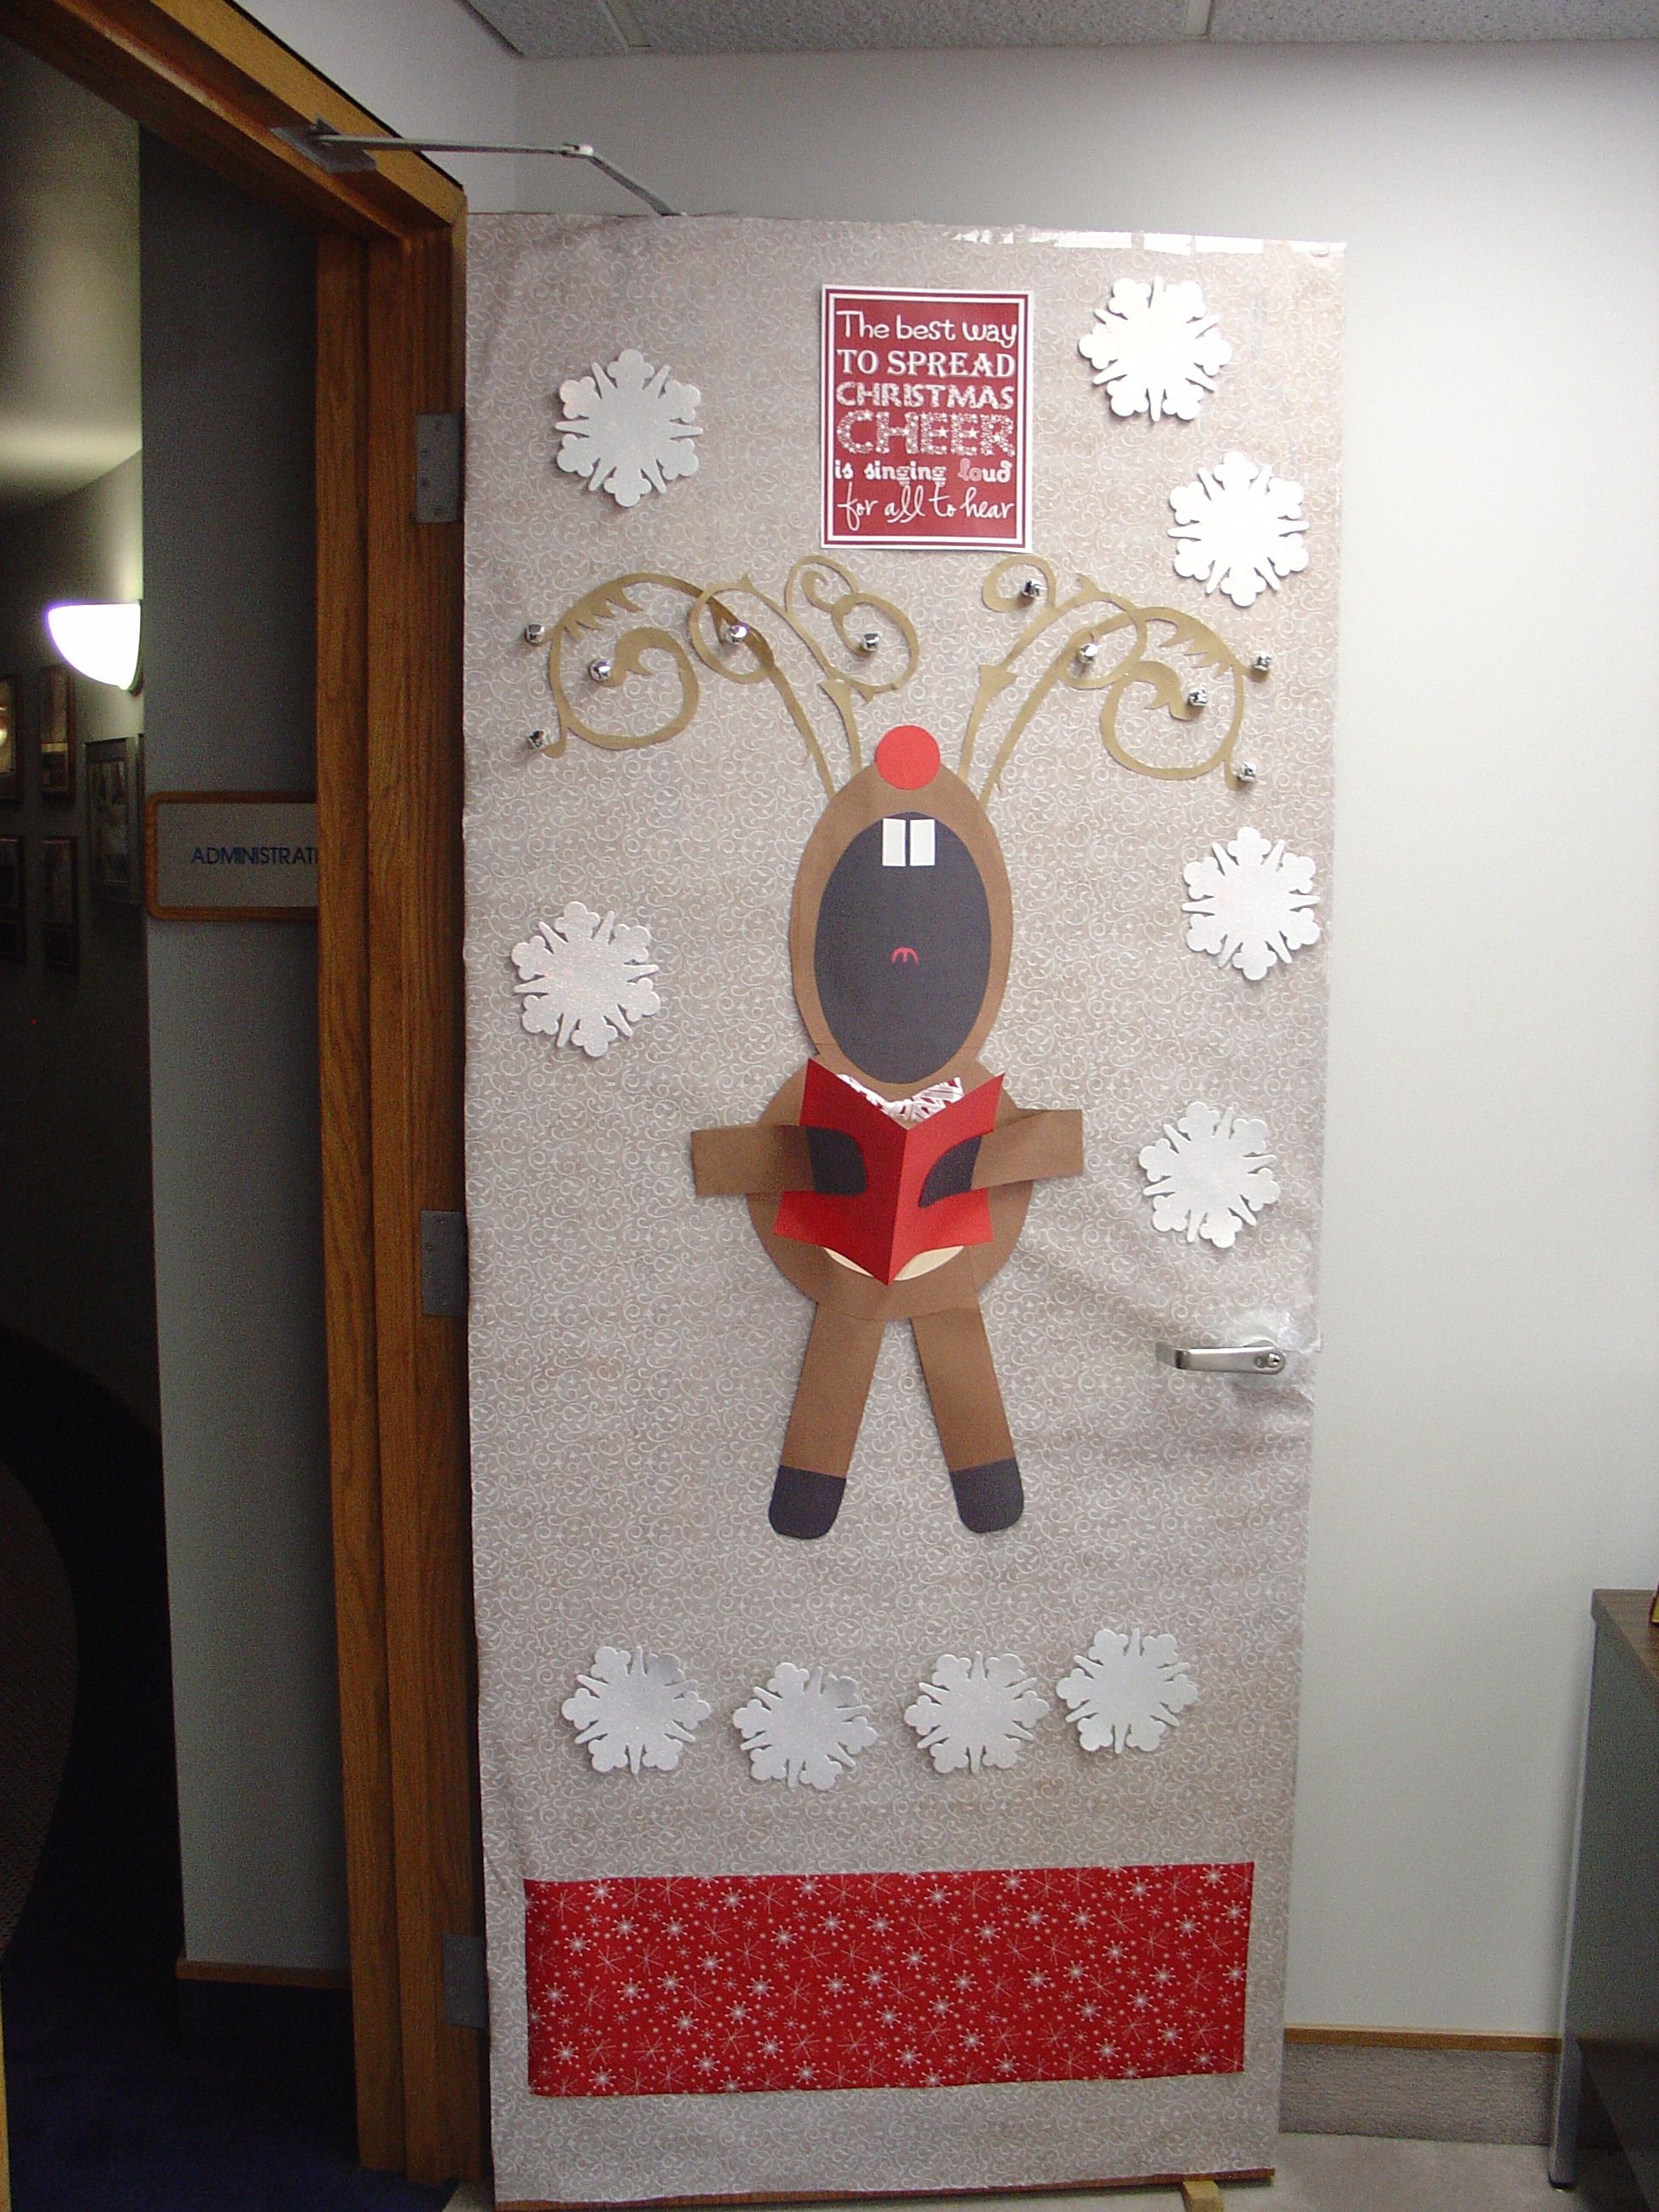 Christmas Decoration Ideas 2012 christmas door decoration at office 2012 | christmas crafts